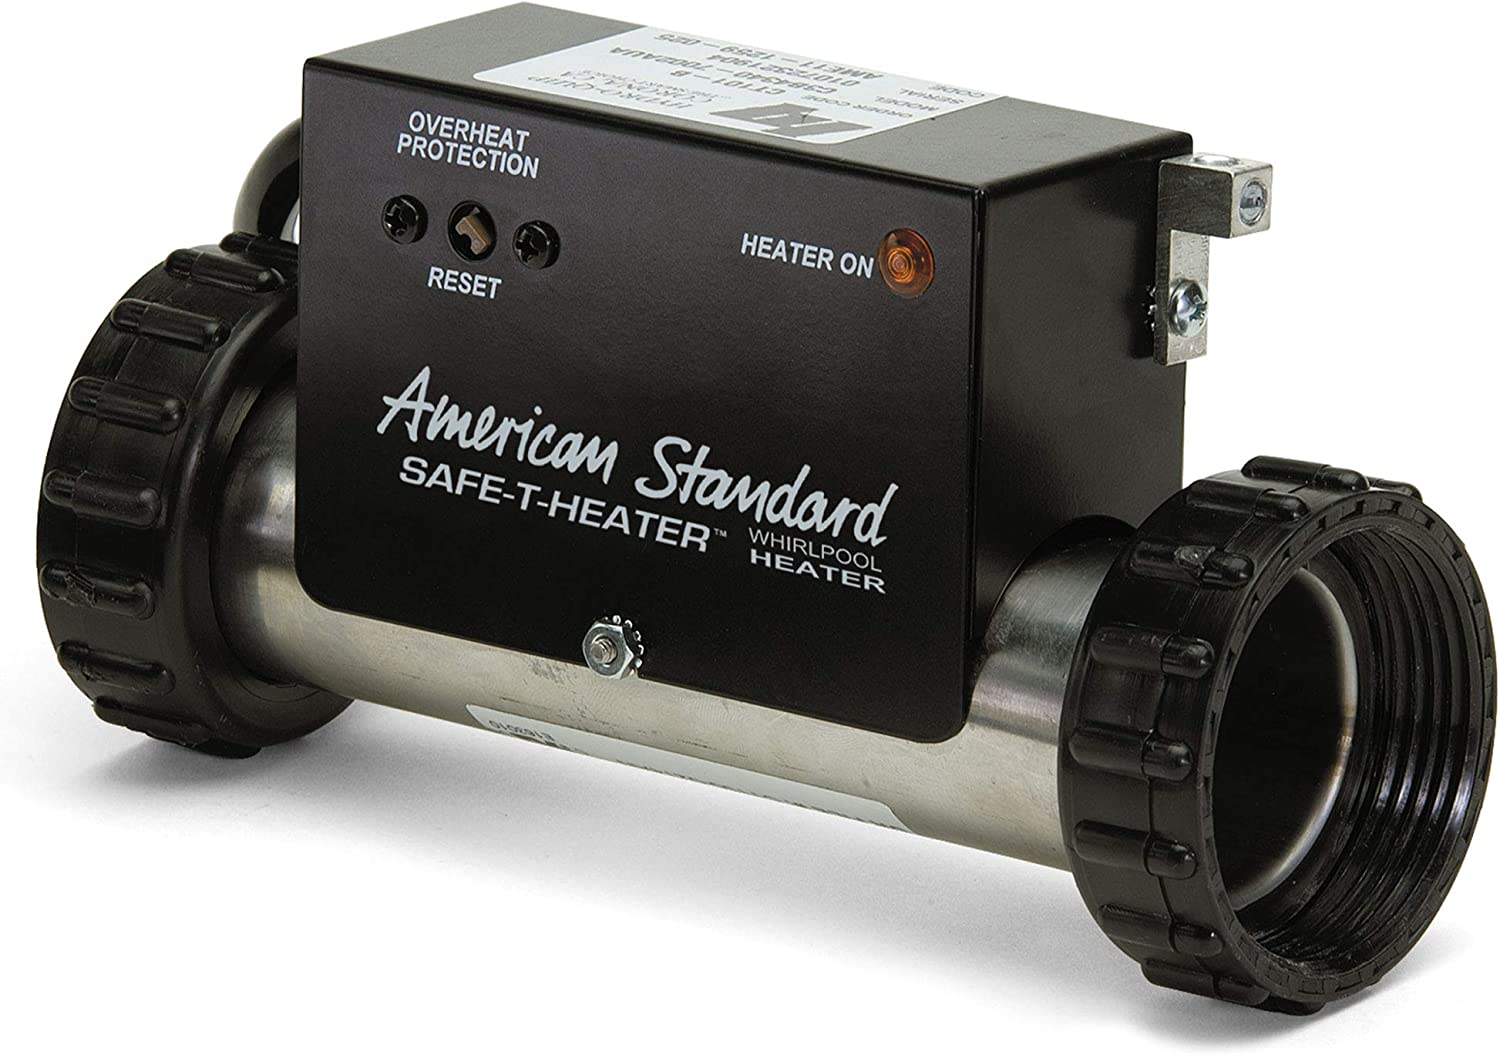 American Standard 9075.120 Safe-T-Heater